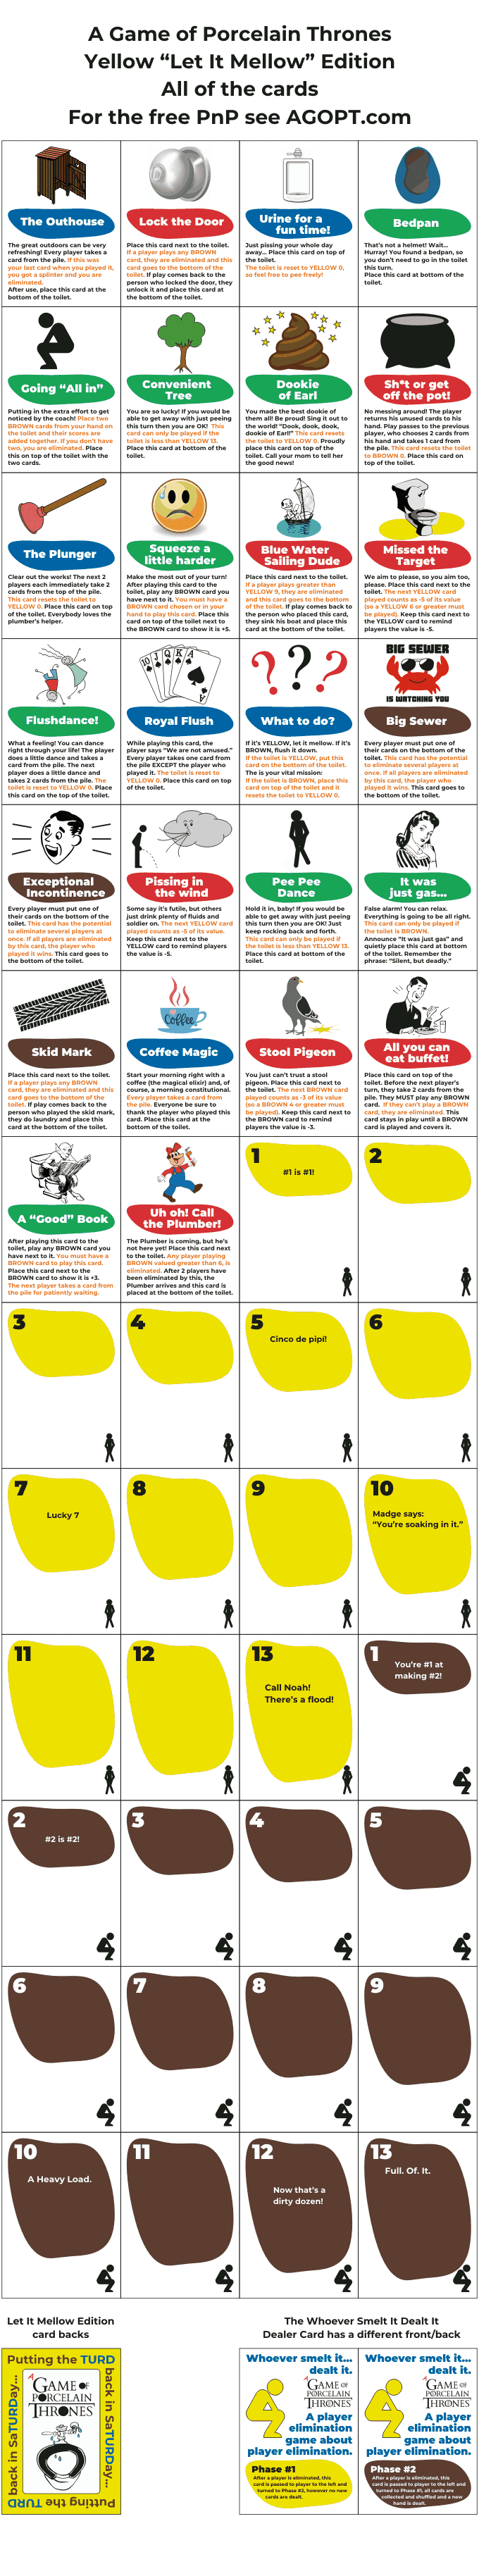 "Download a free PnP of the Yellow ""Let it mellow"" Edition"